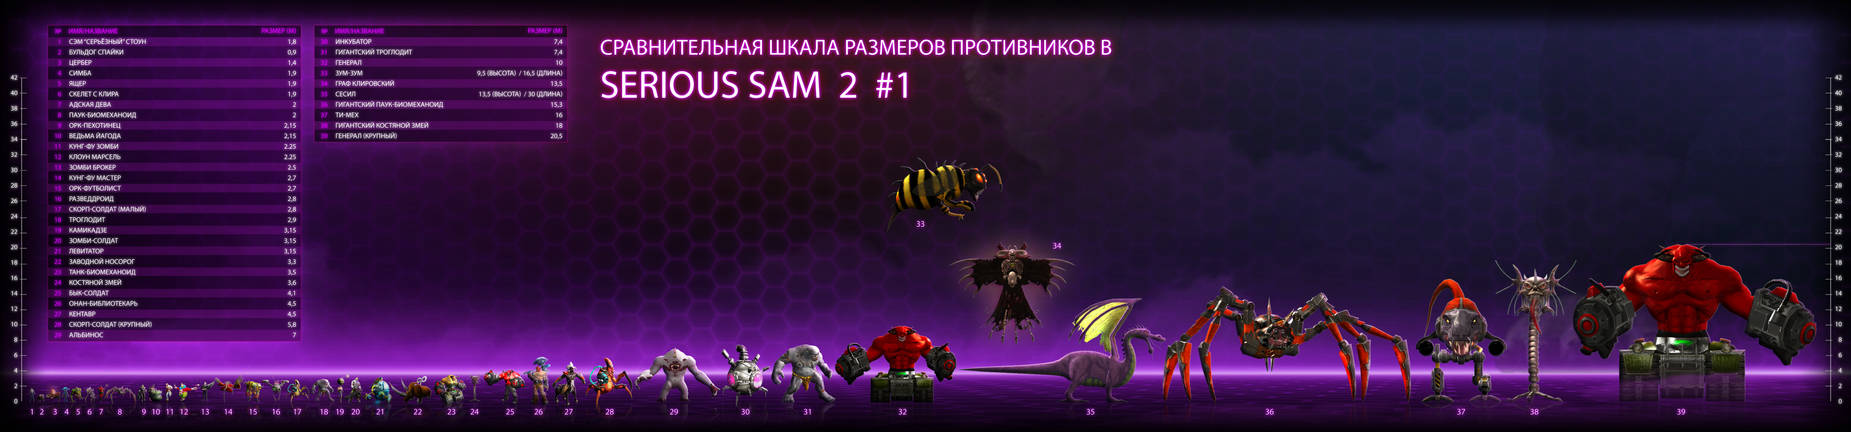 Size comparison of 'Serious Sam 2' #1 (RU) by ImmortalTartal